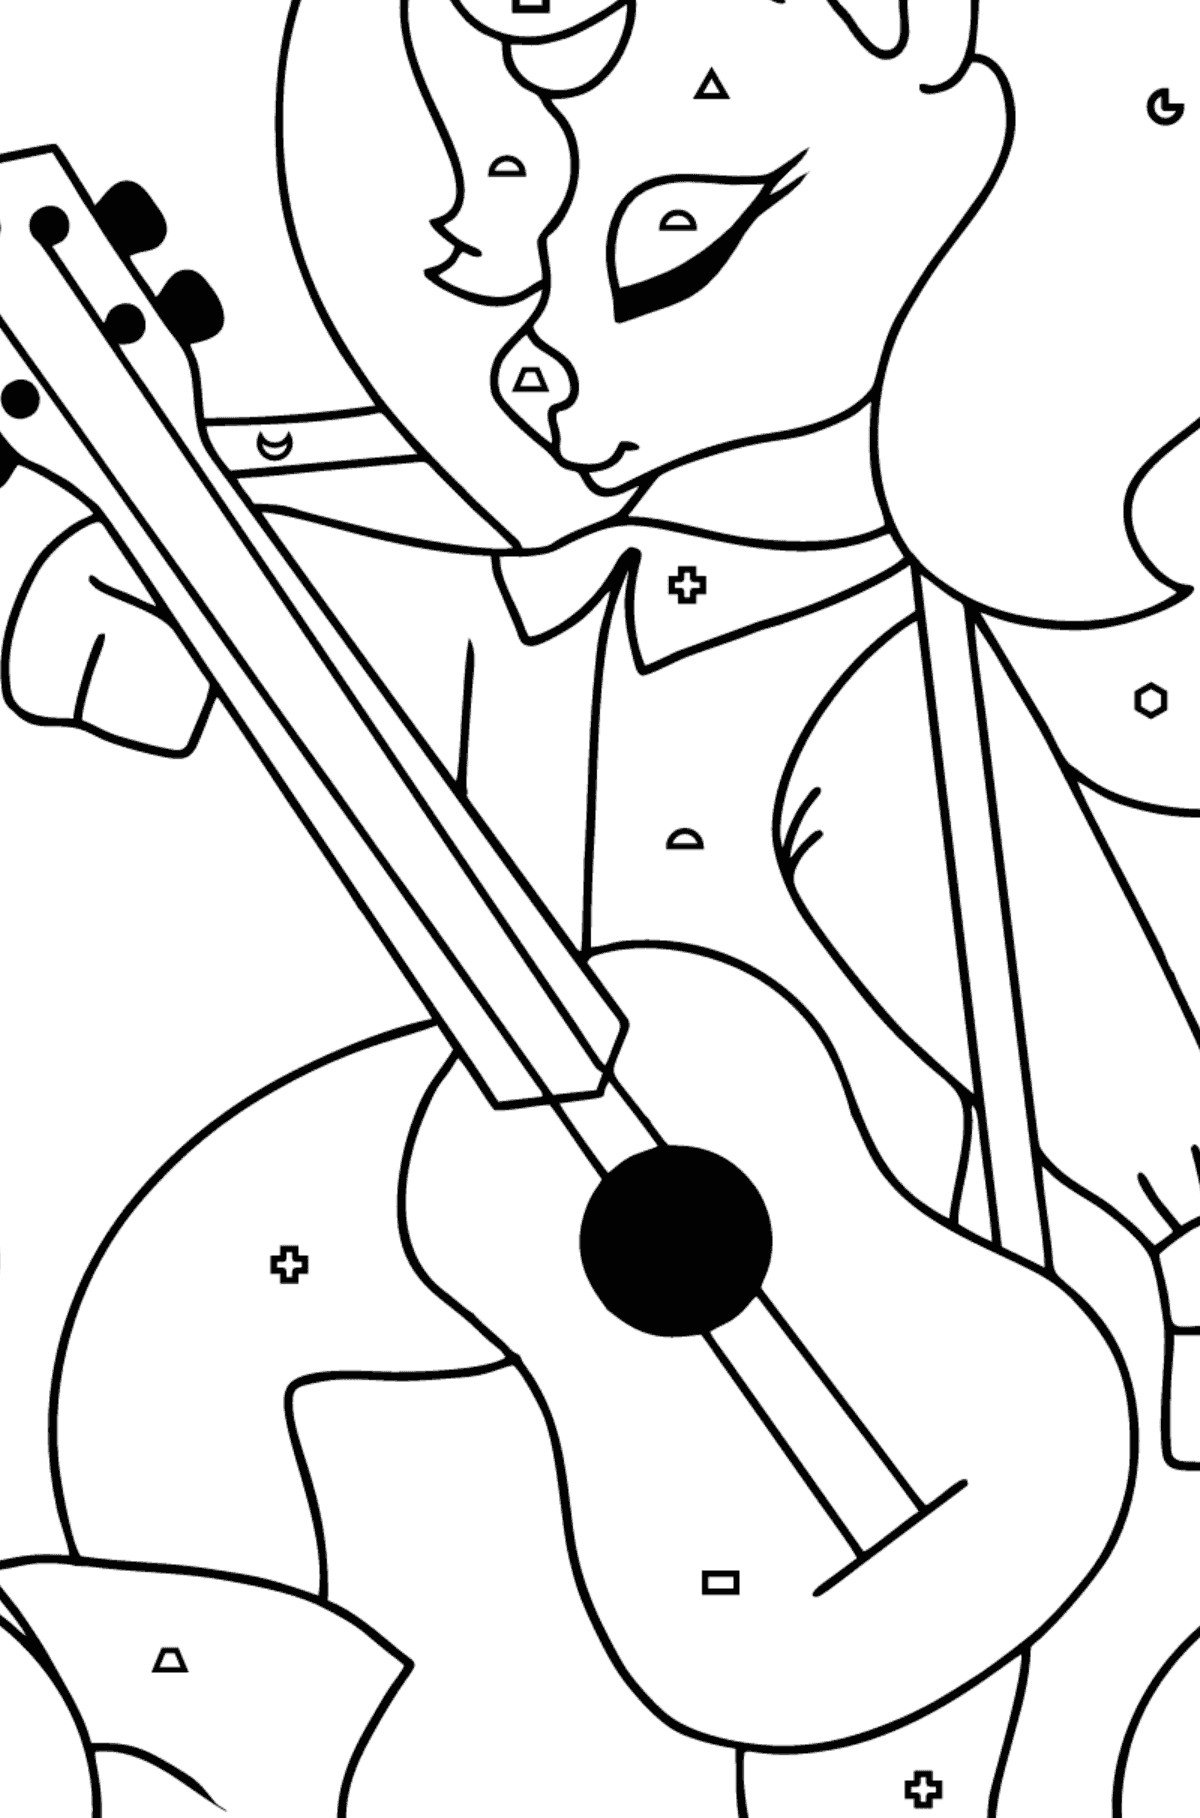 Coloring Page - A Unicorn with a Guitar - Coloring by Geometric Shapes for Kids